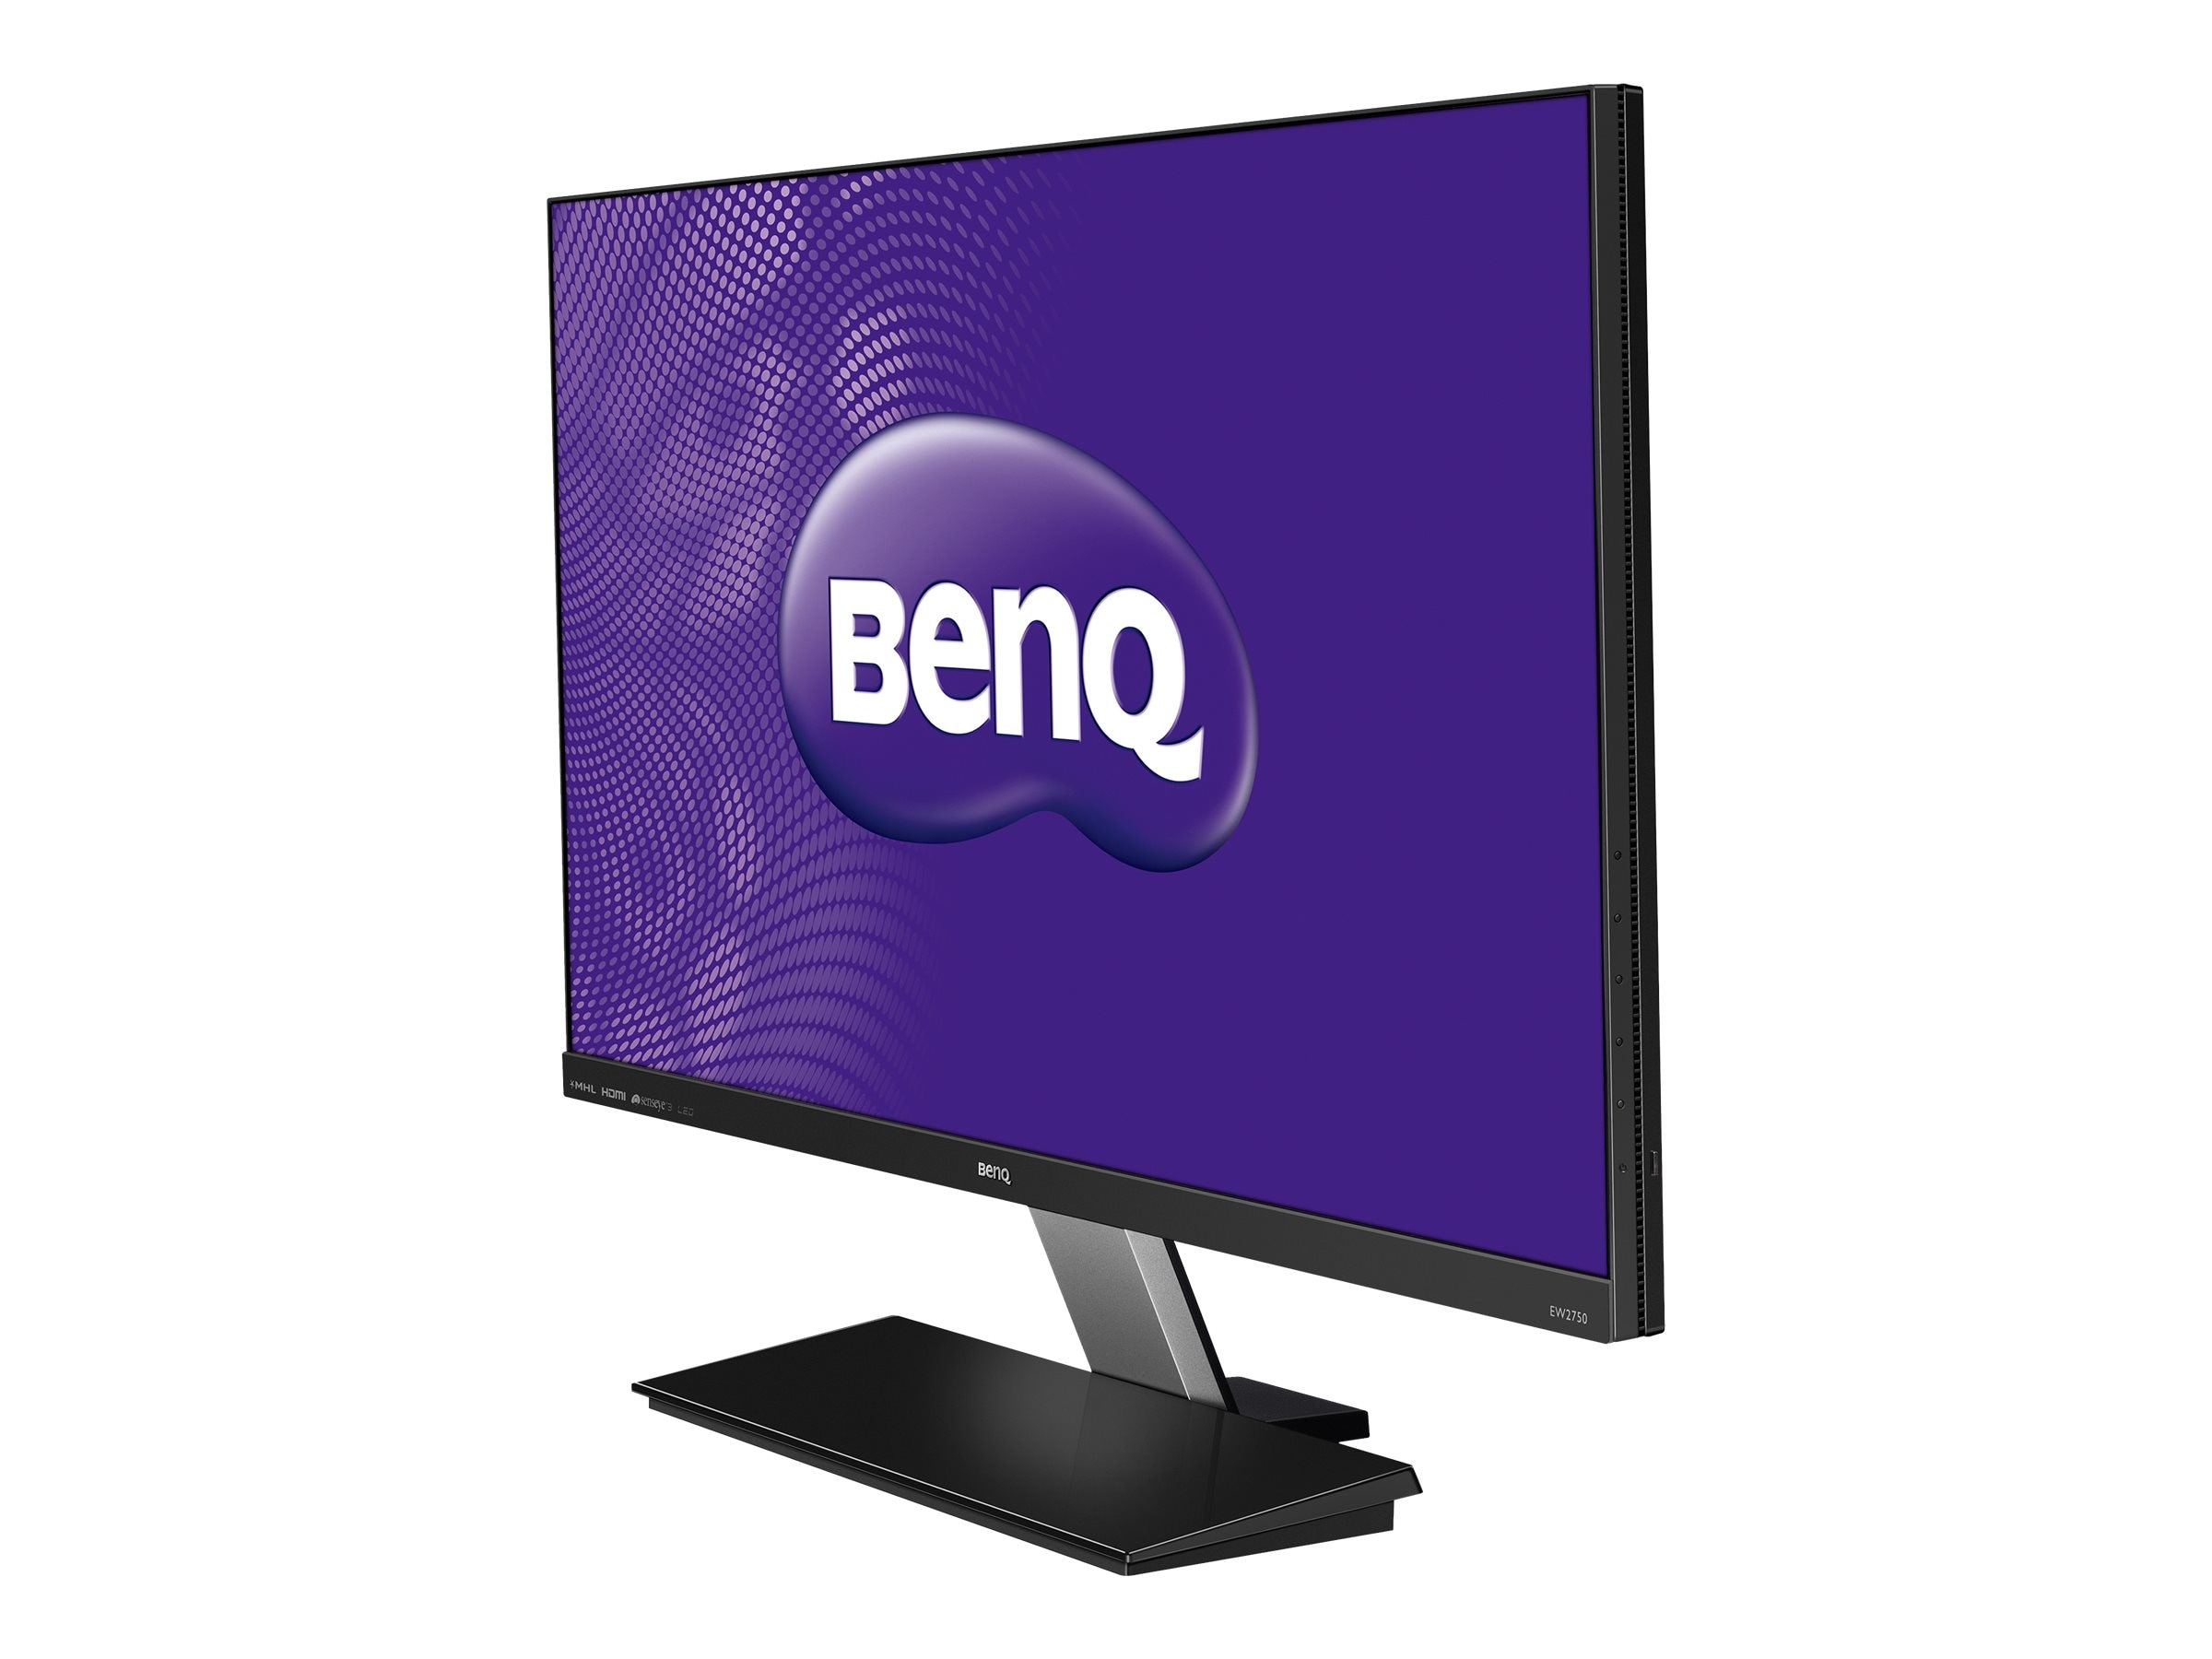 Benq 27 EW2750ZL Full HD LED-LCD Monitor, Black